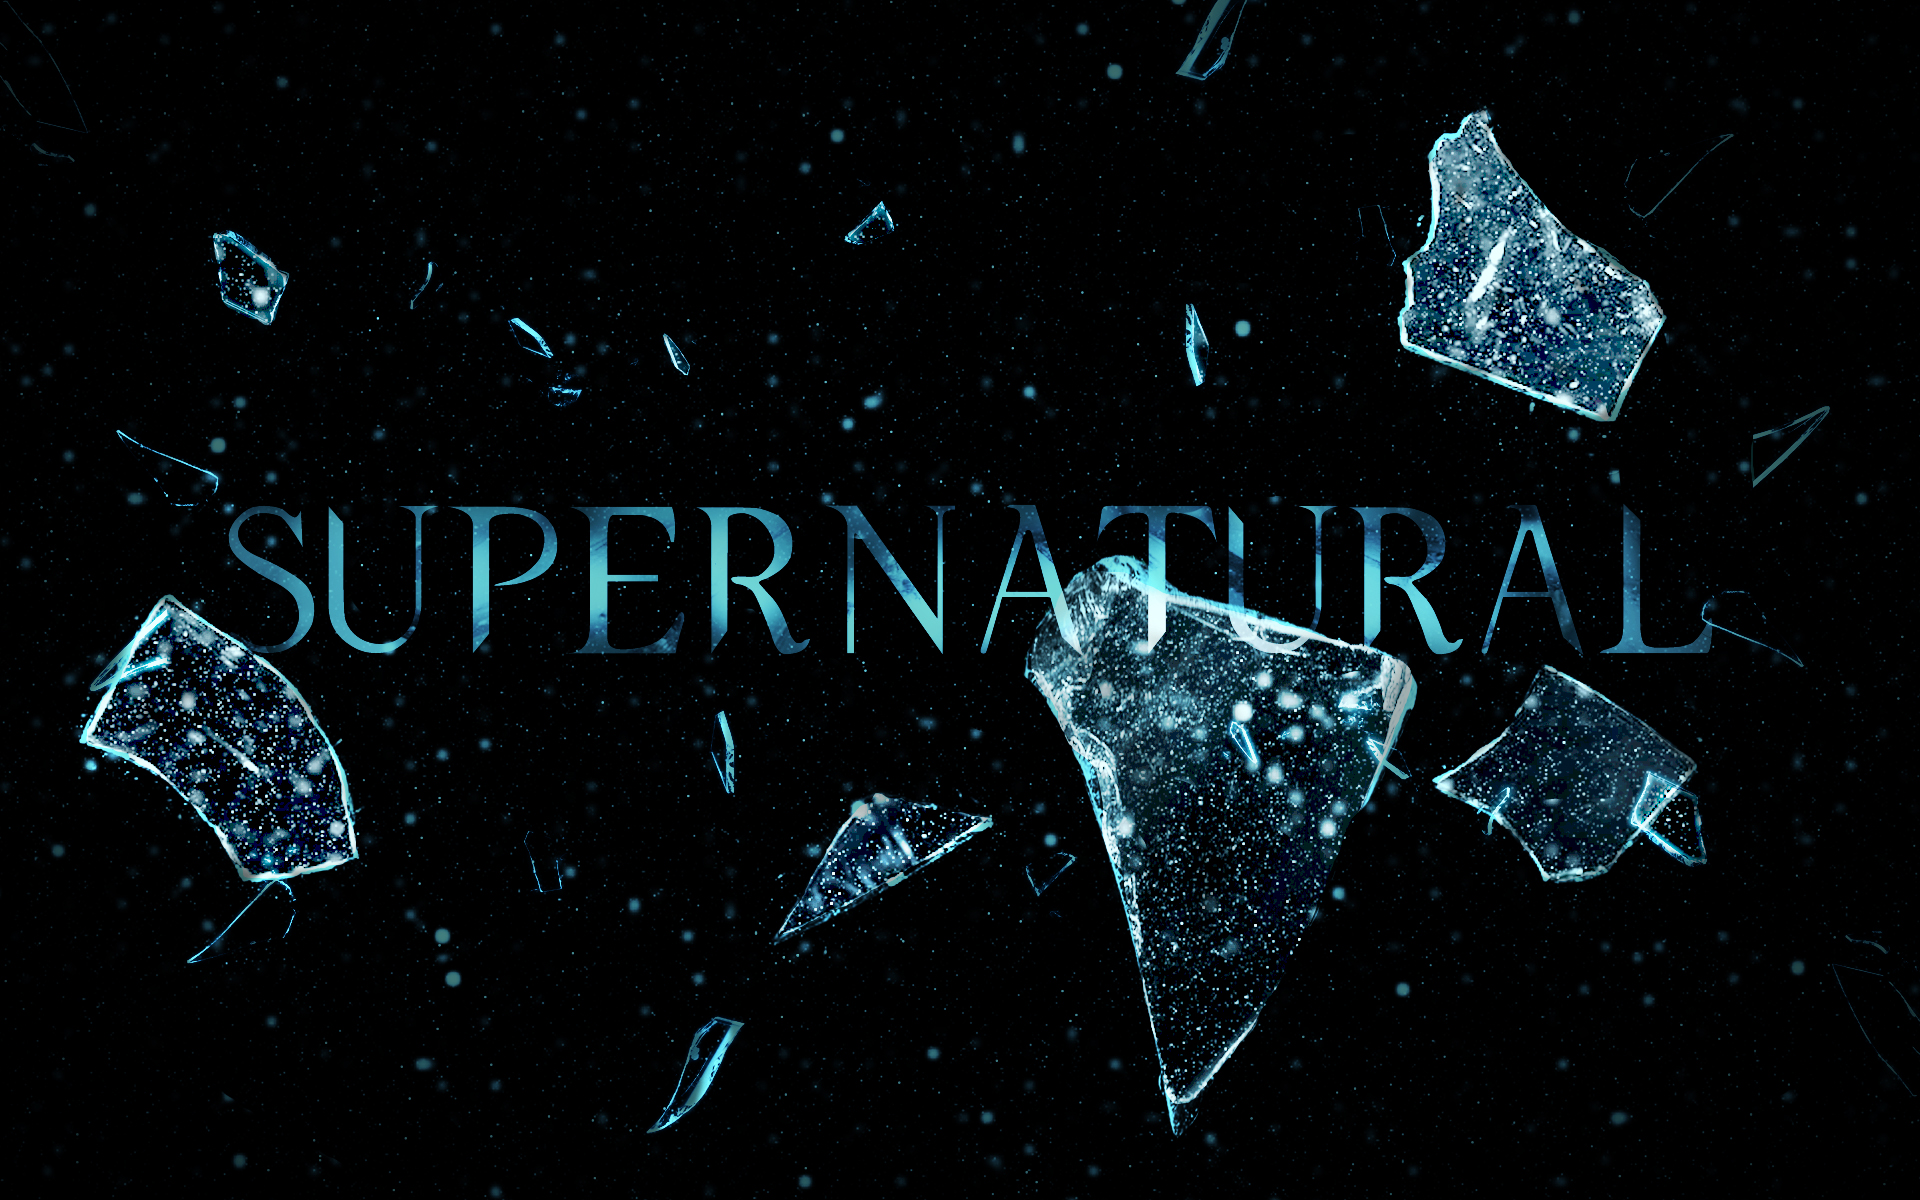 supernatural wallpapers light blue HD Desktop Wallpapers 4k HD